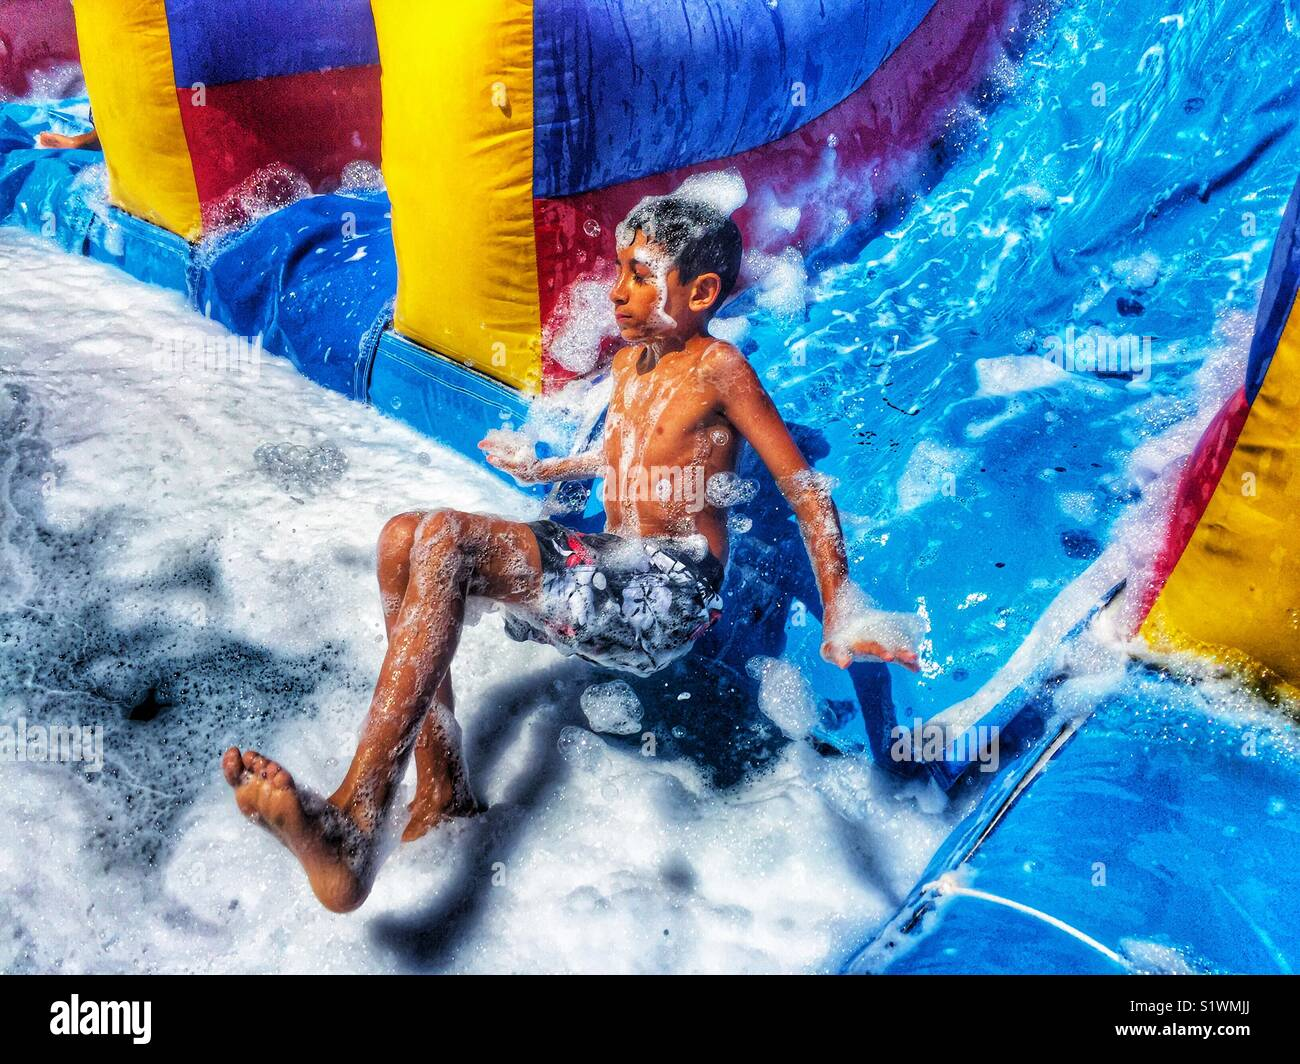 Boy sliding down a water slide with soap - Stock Image